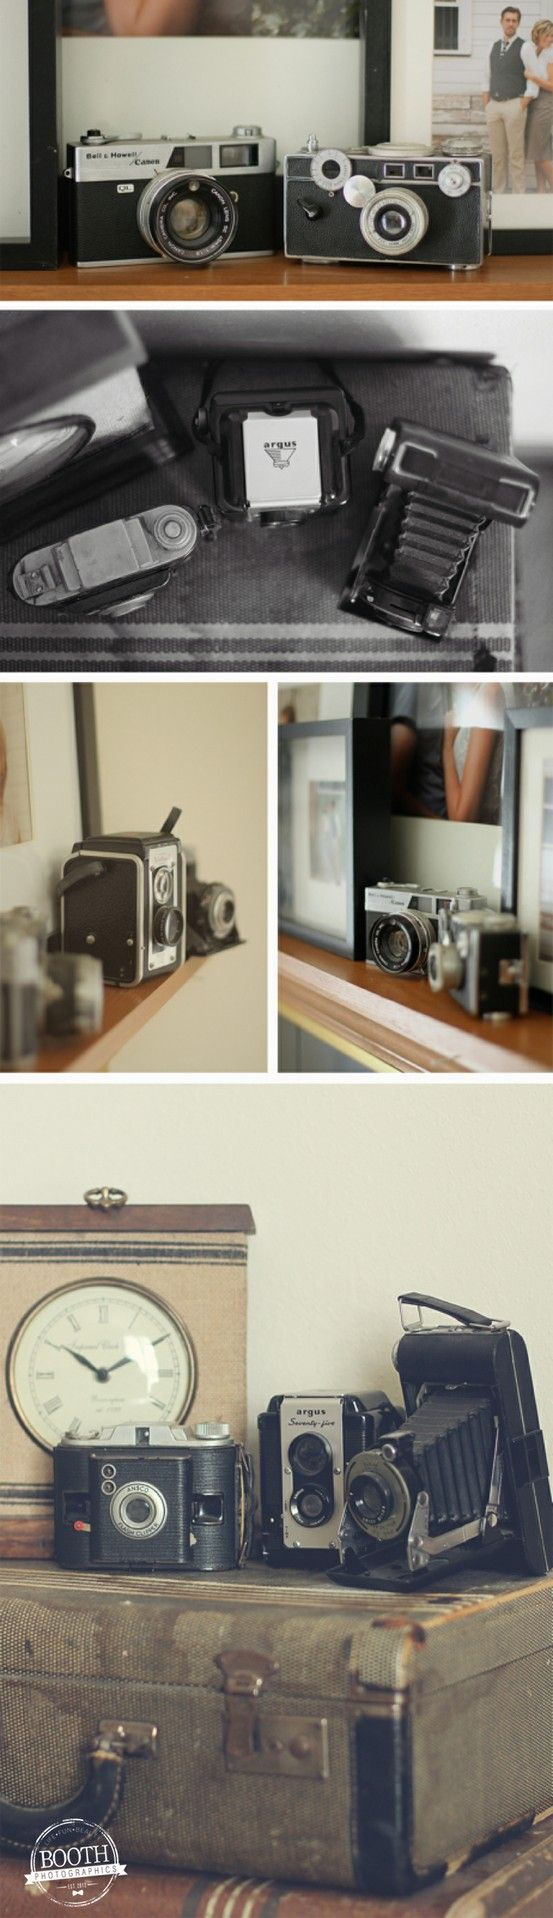 We decorated the home with vintage cameras from my grandpa